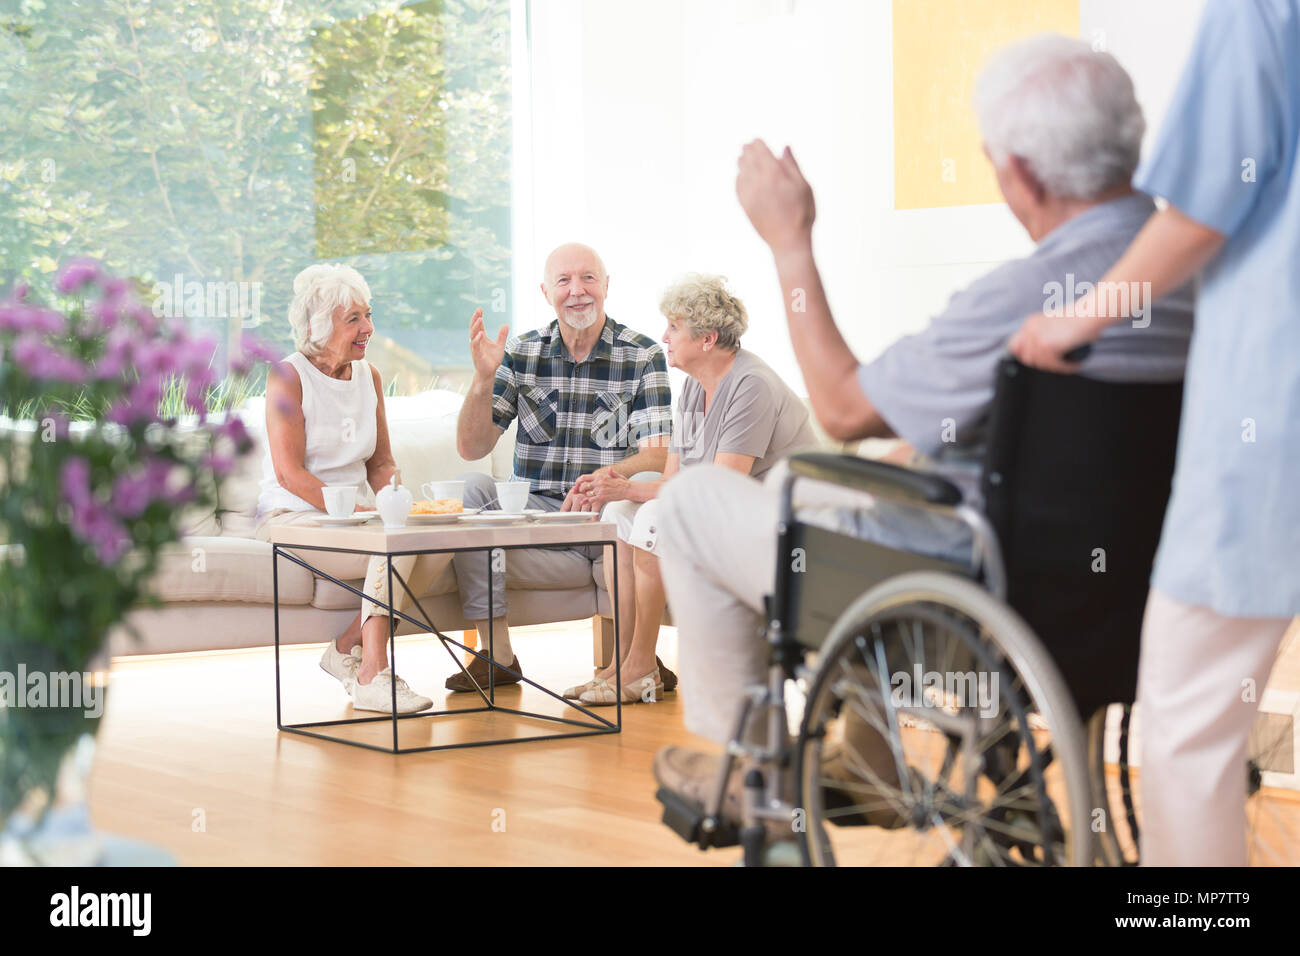 Group of senior people welcoming a friend while sitting together in living room Stock Photo